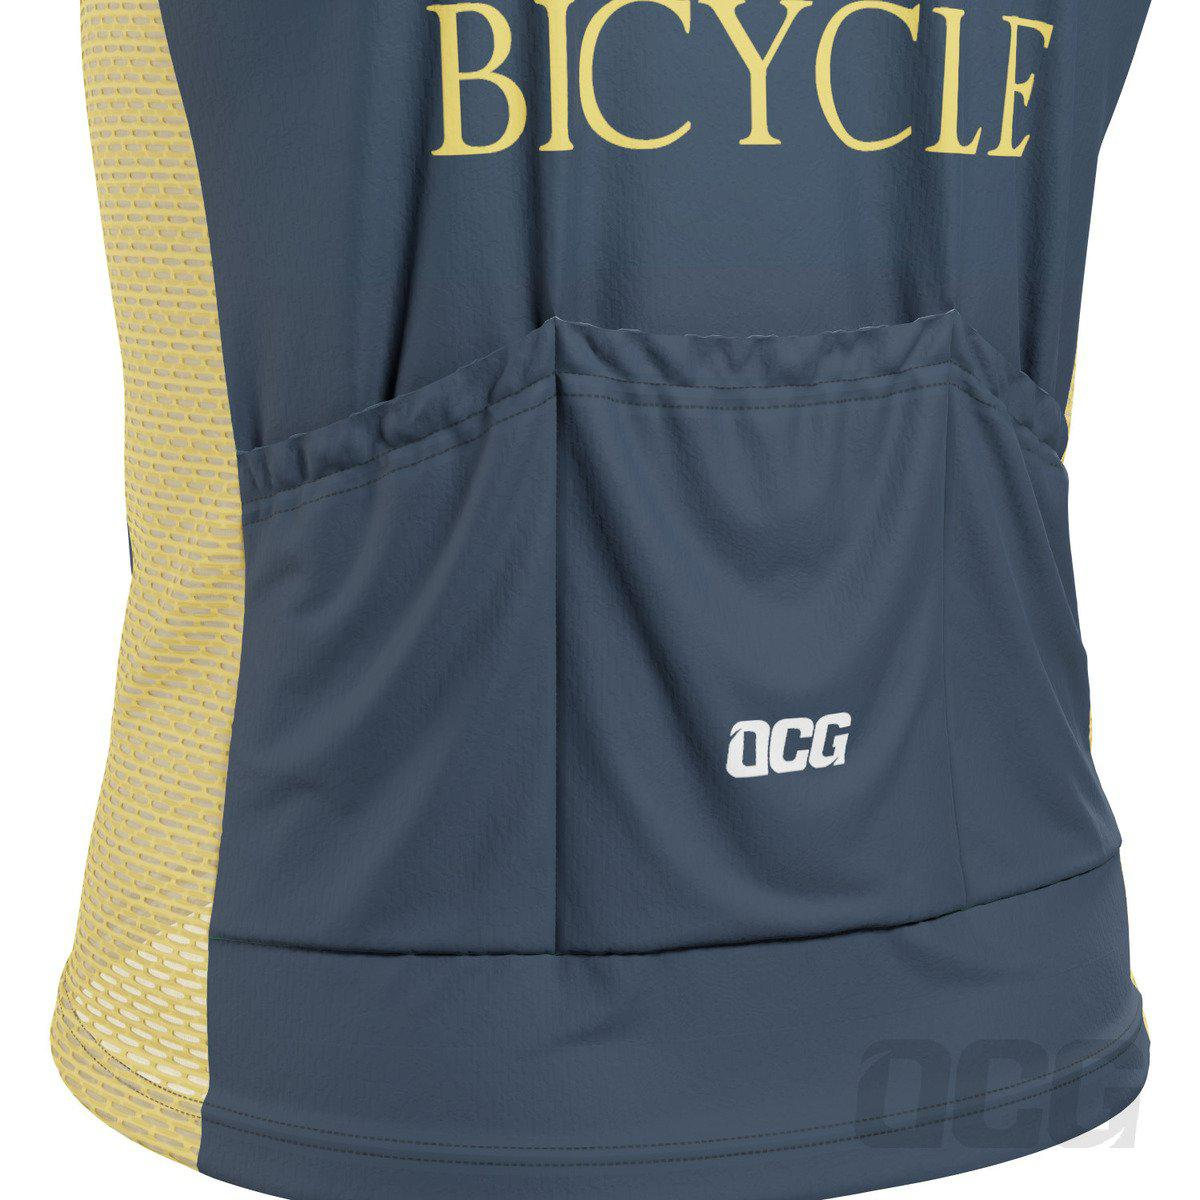 Men's Old Man Bicycle Sleeveless Cycling Jersey